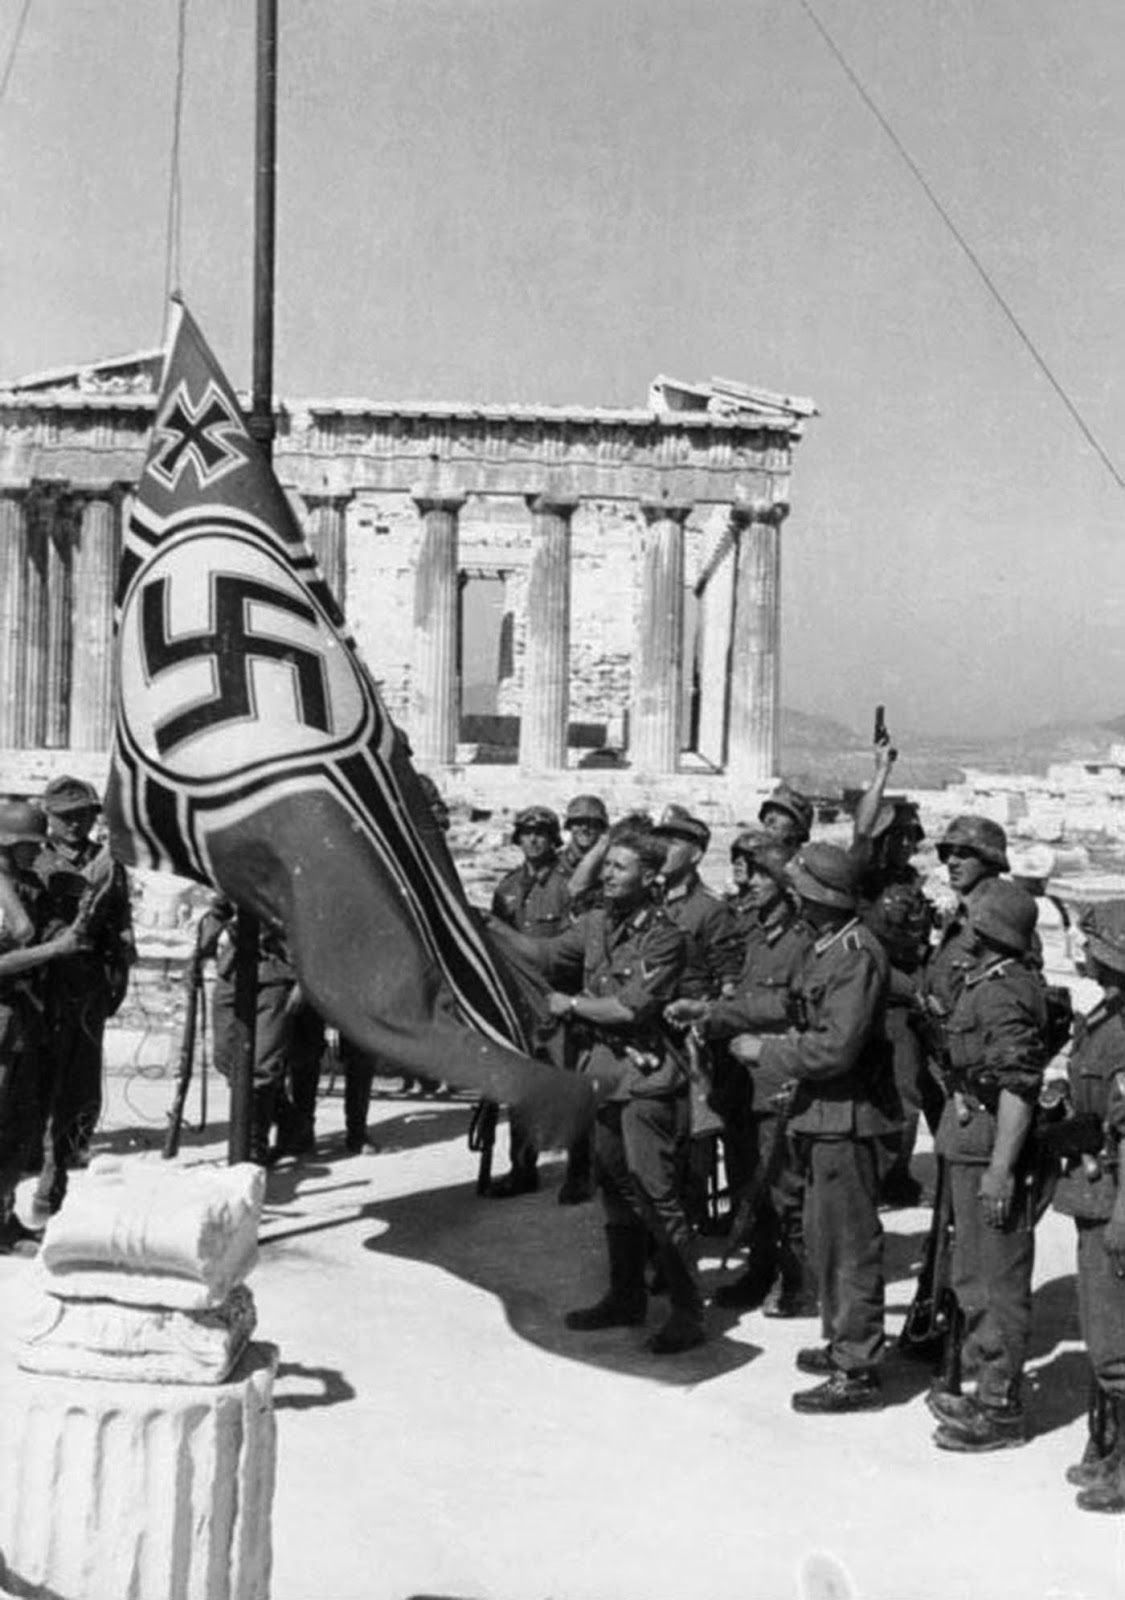 Nazi German flag being raised over Acropolis, 1941.